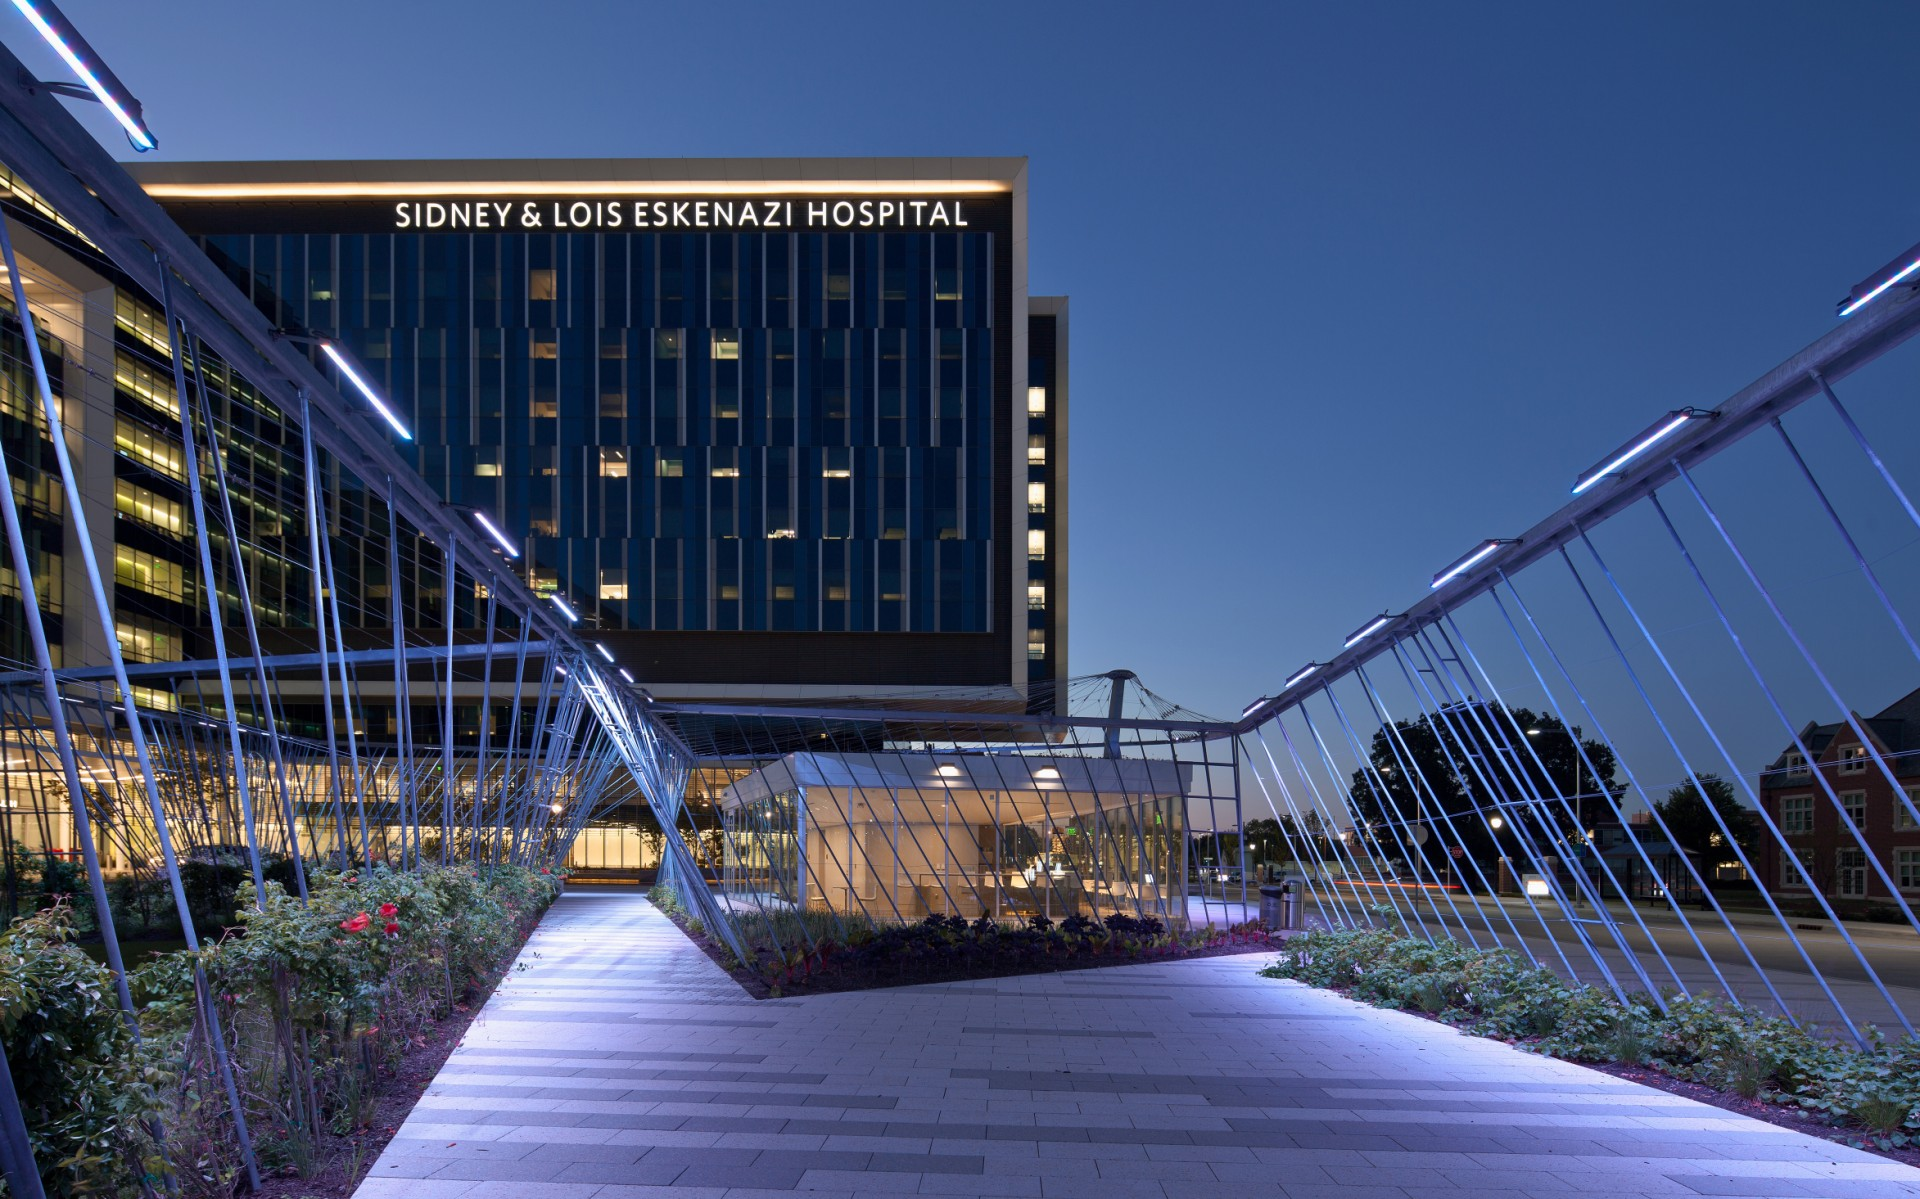 At the Eskenazi Health Hospital in Indianapolis, Tillett Lighting Design Associates (TLDA) used Lumenpulse luminaires to give the garden pavilion a soothing nighttime feel.